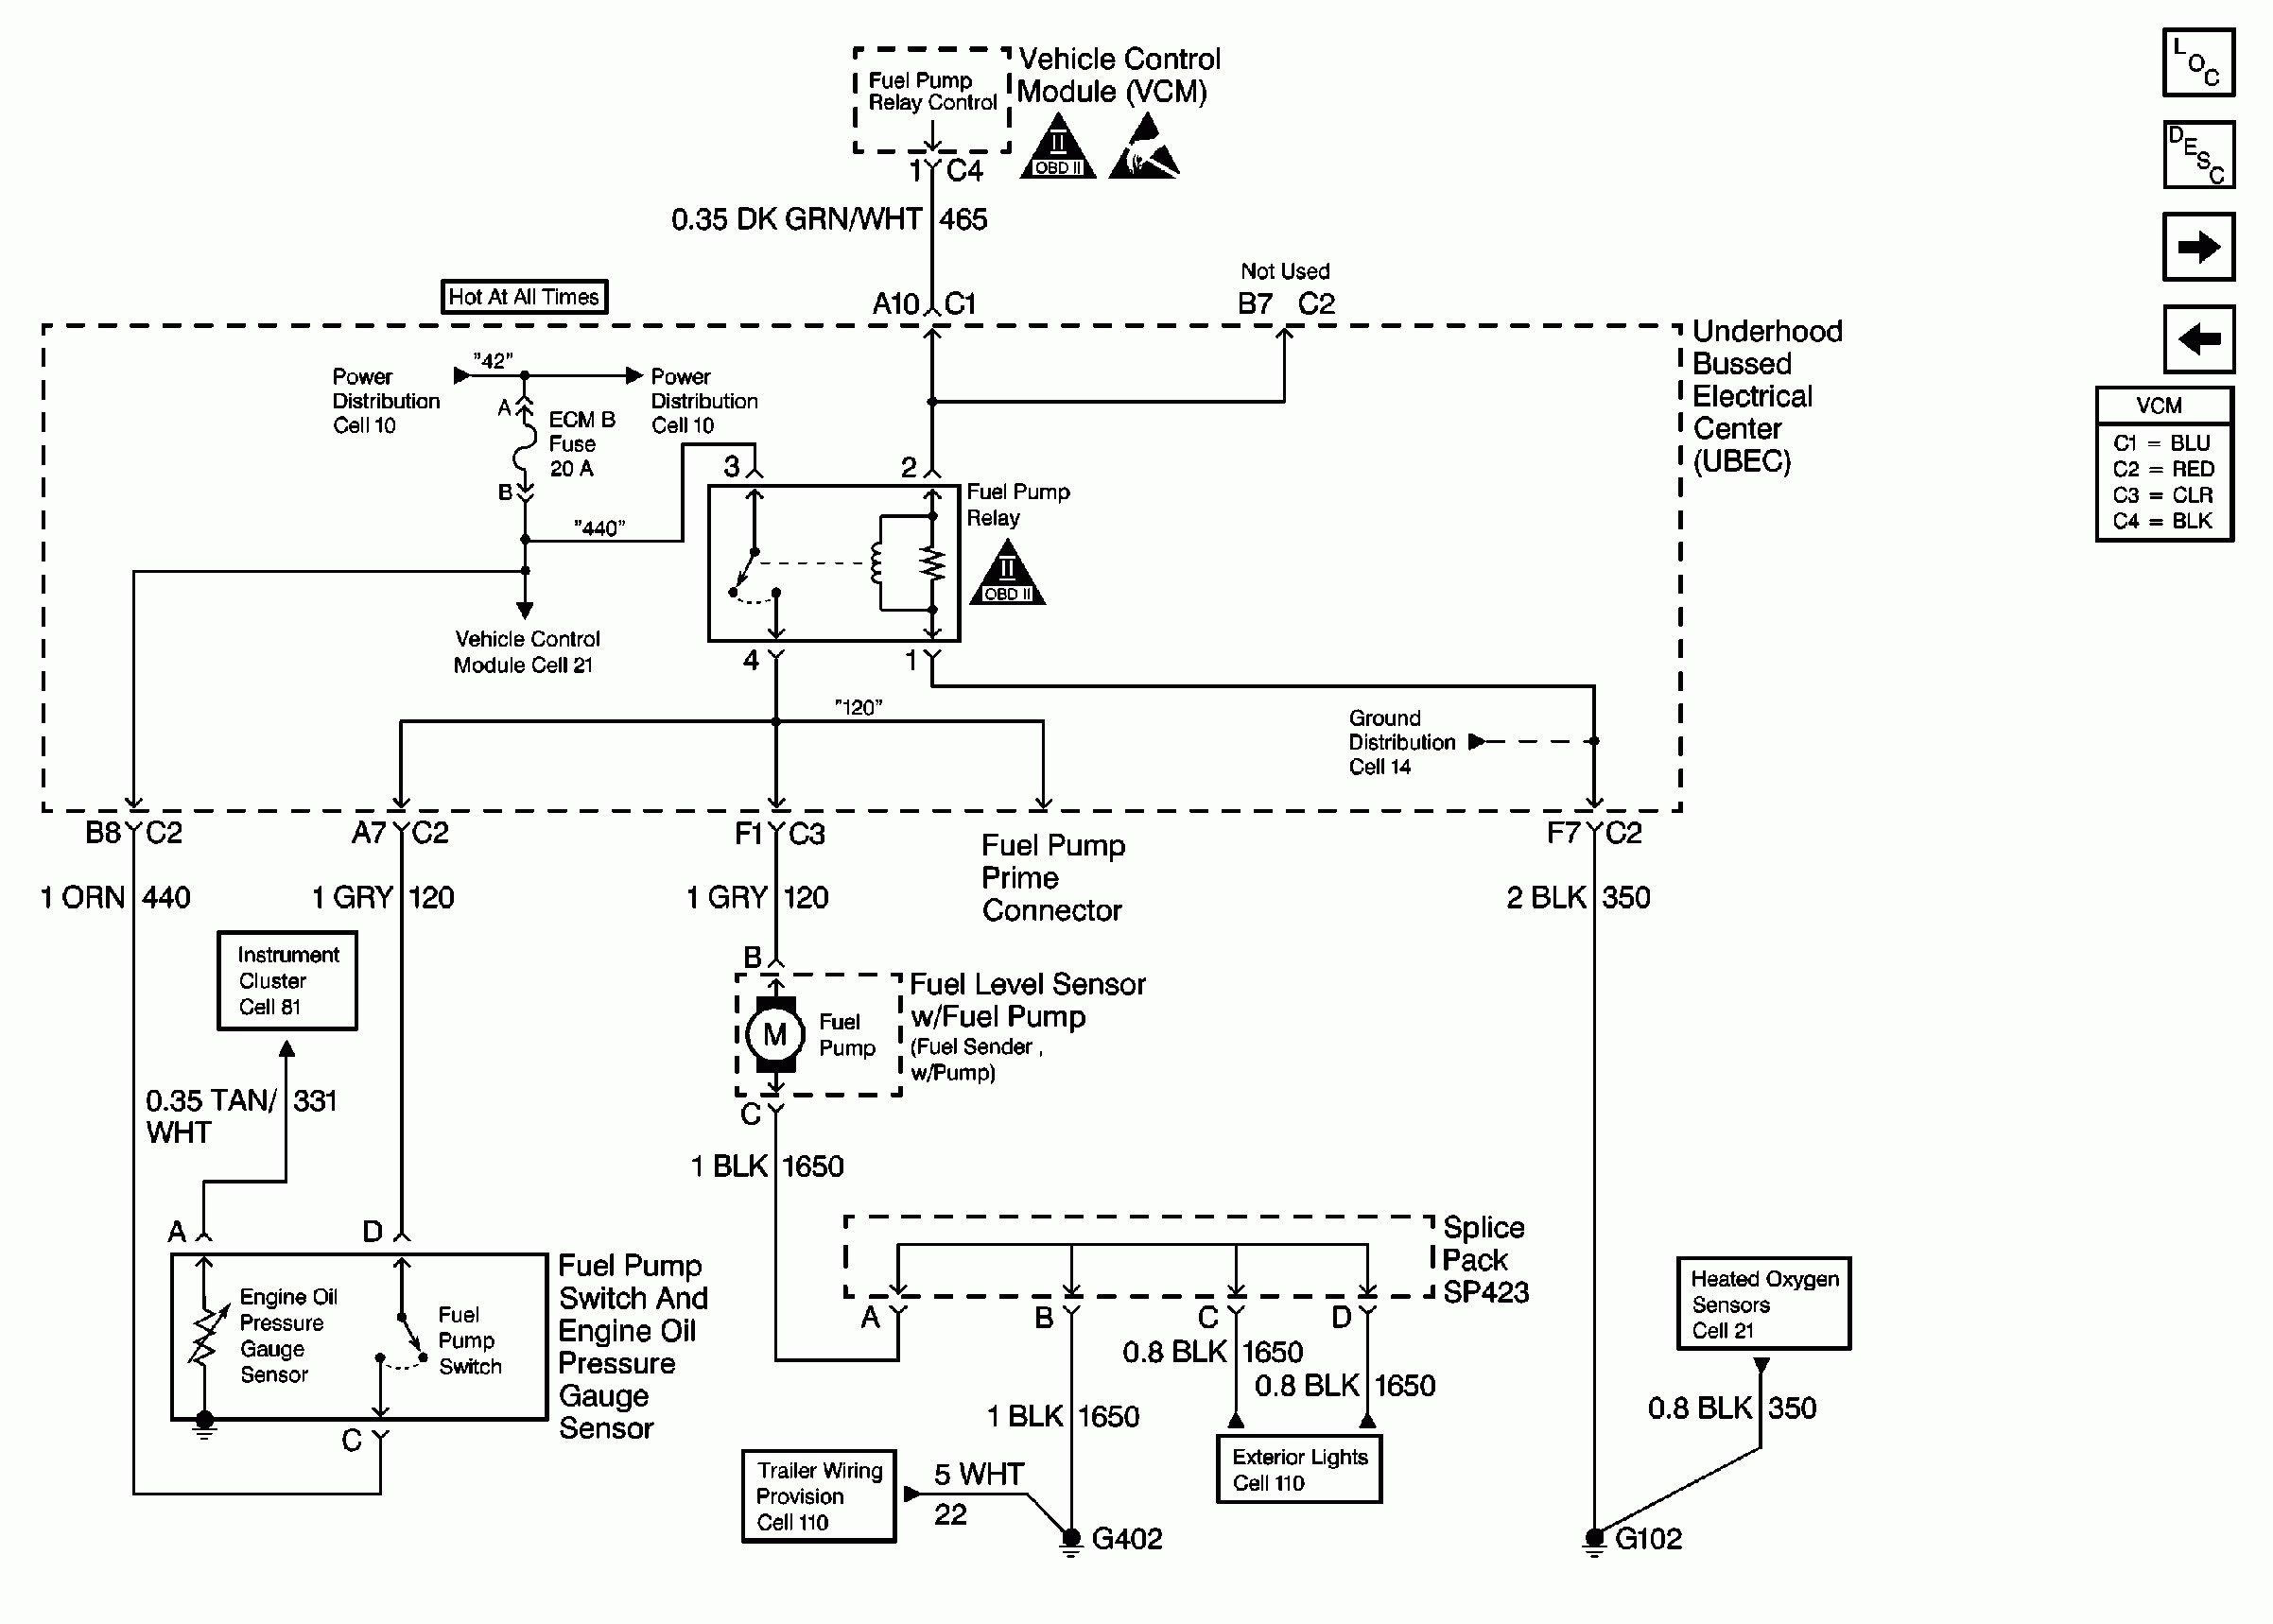 Wiring Harness S10 Wiring Diagram Pdf from i.pinimg.com